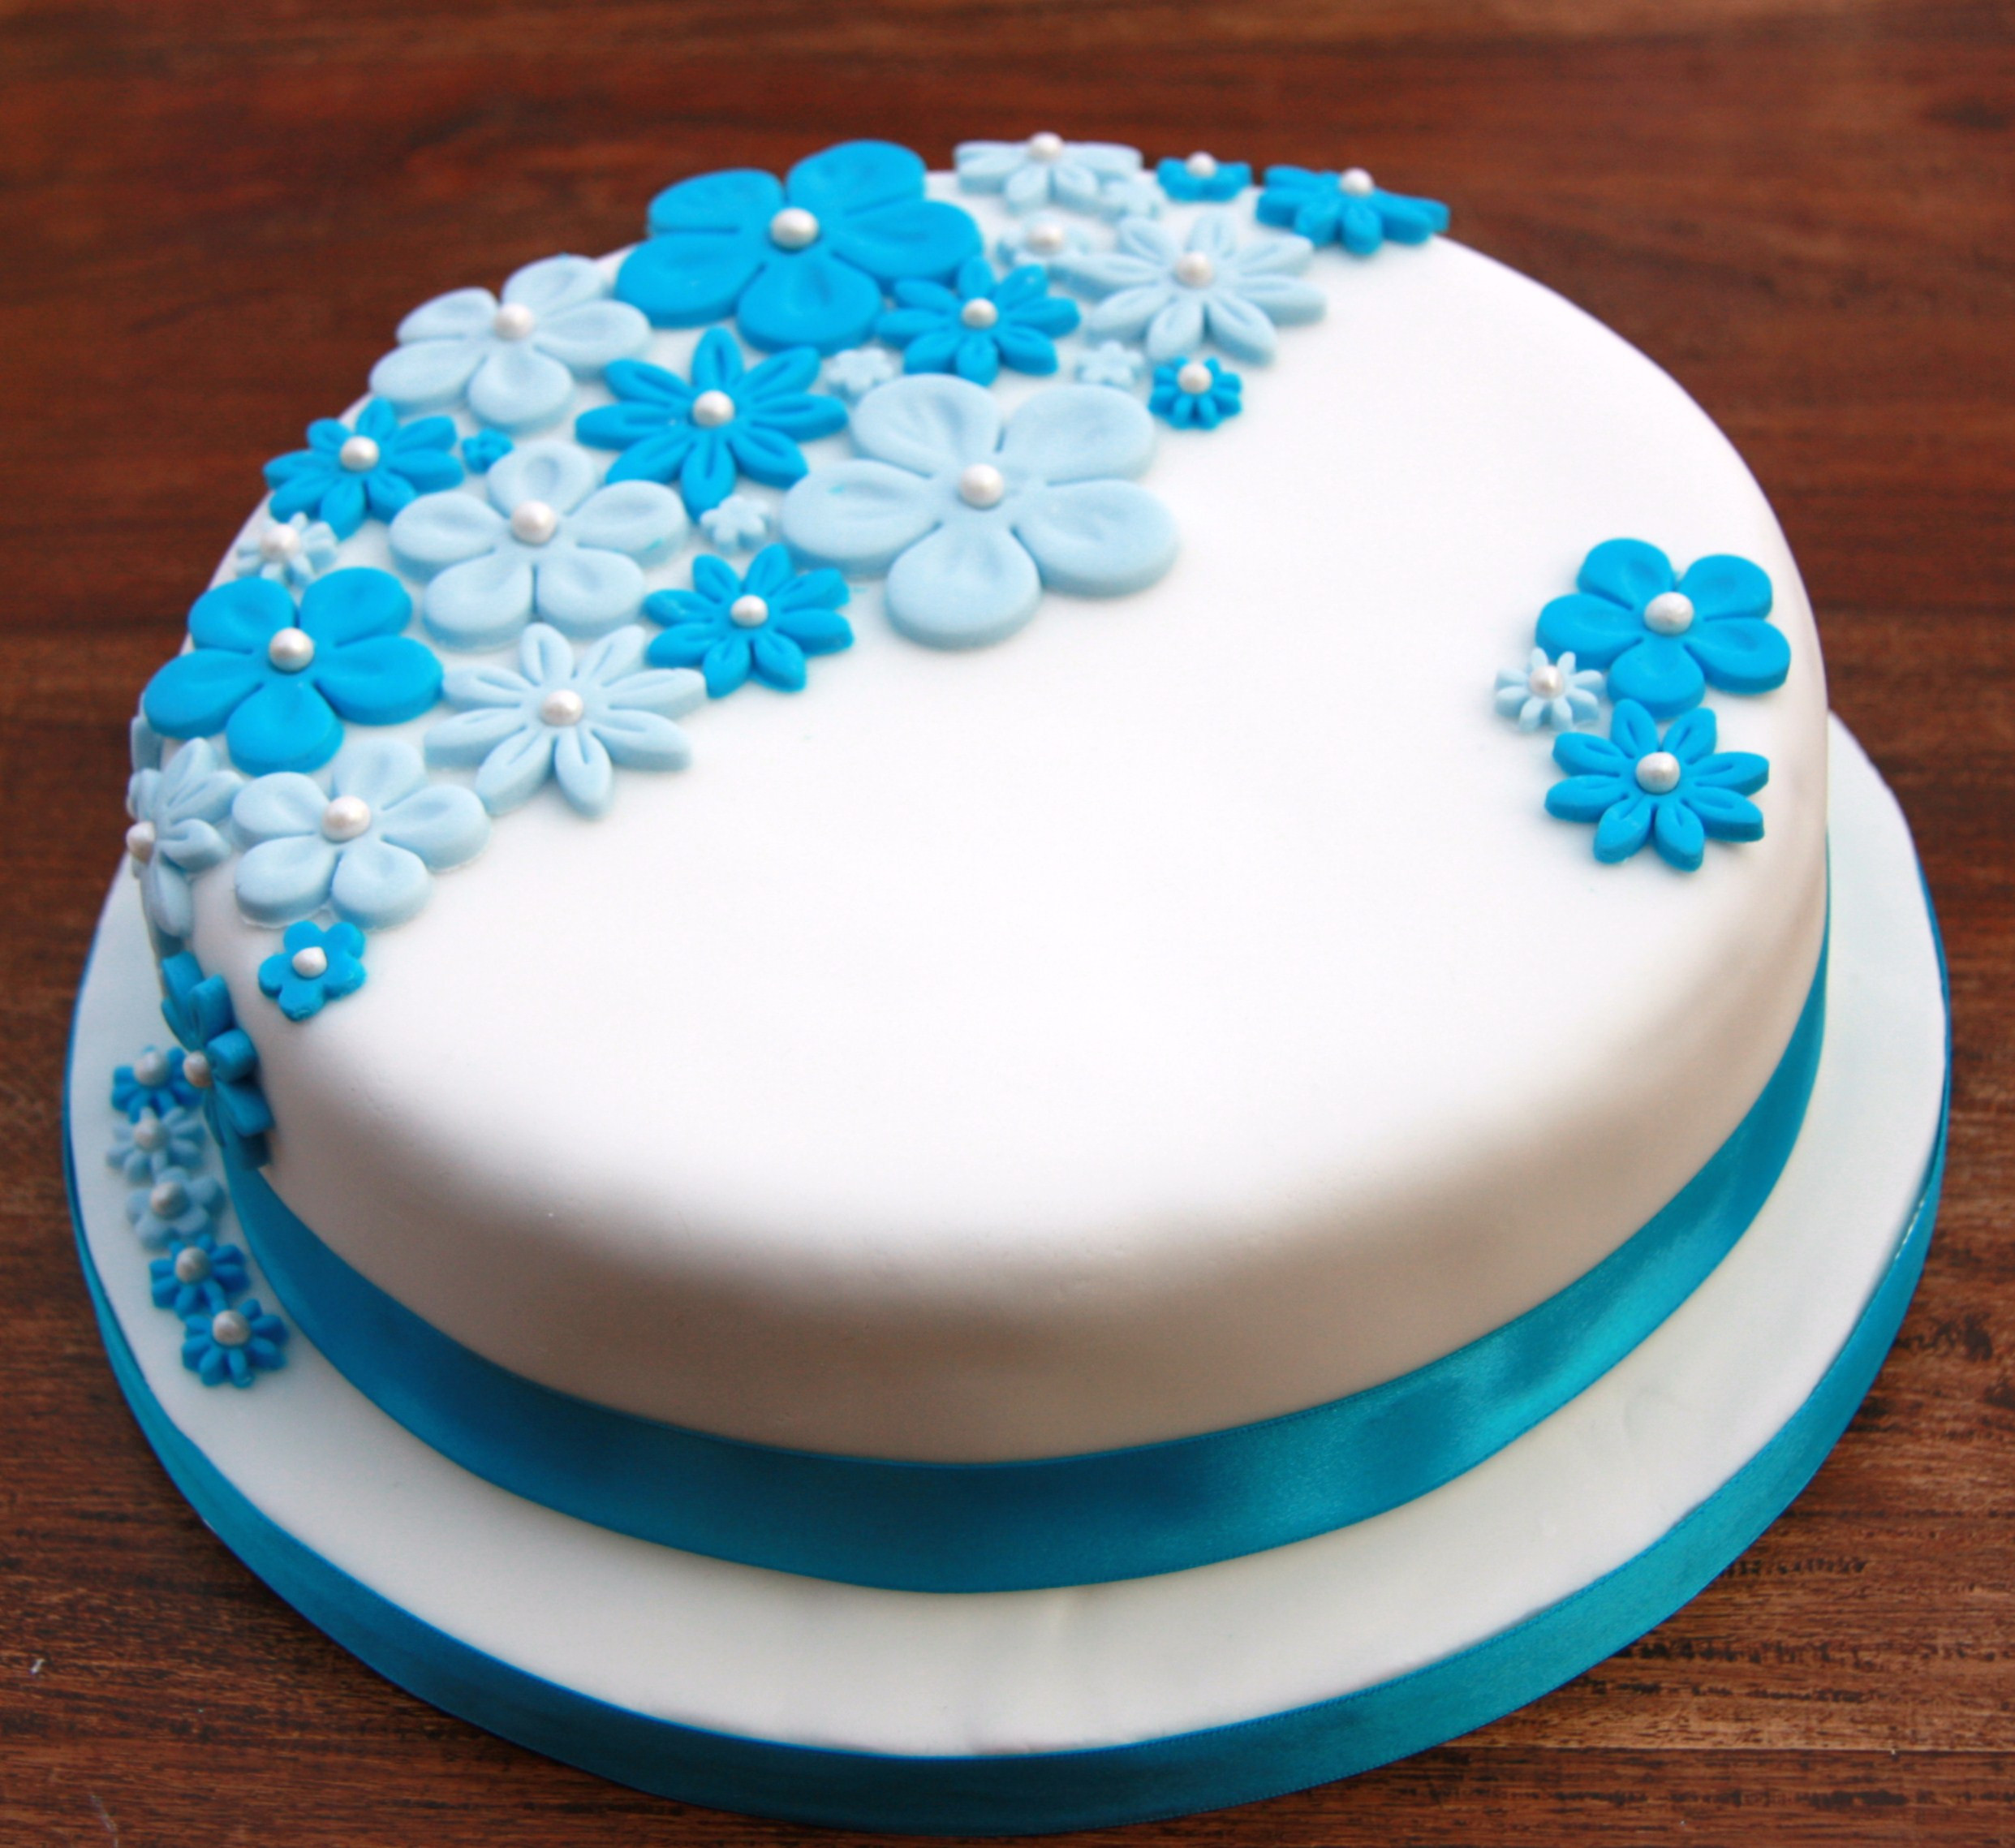 Best ideas about Blue Birthday Cake . Save or Pin Birthday Cake with Blue Flowers – lovinghomemade Now.